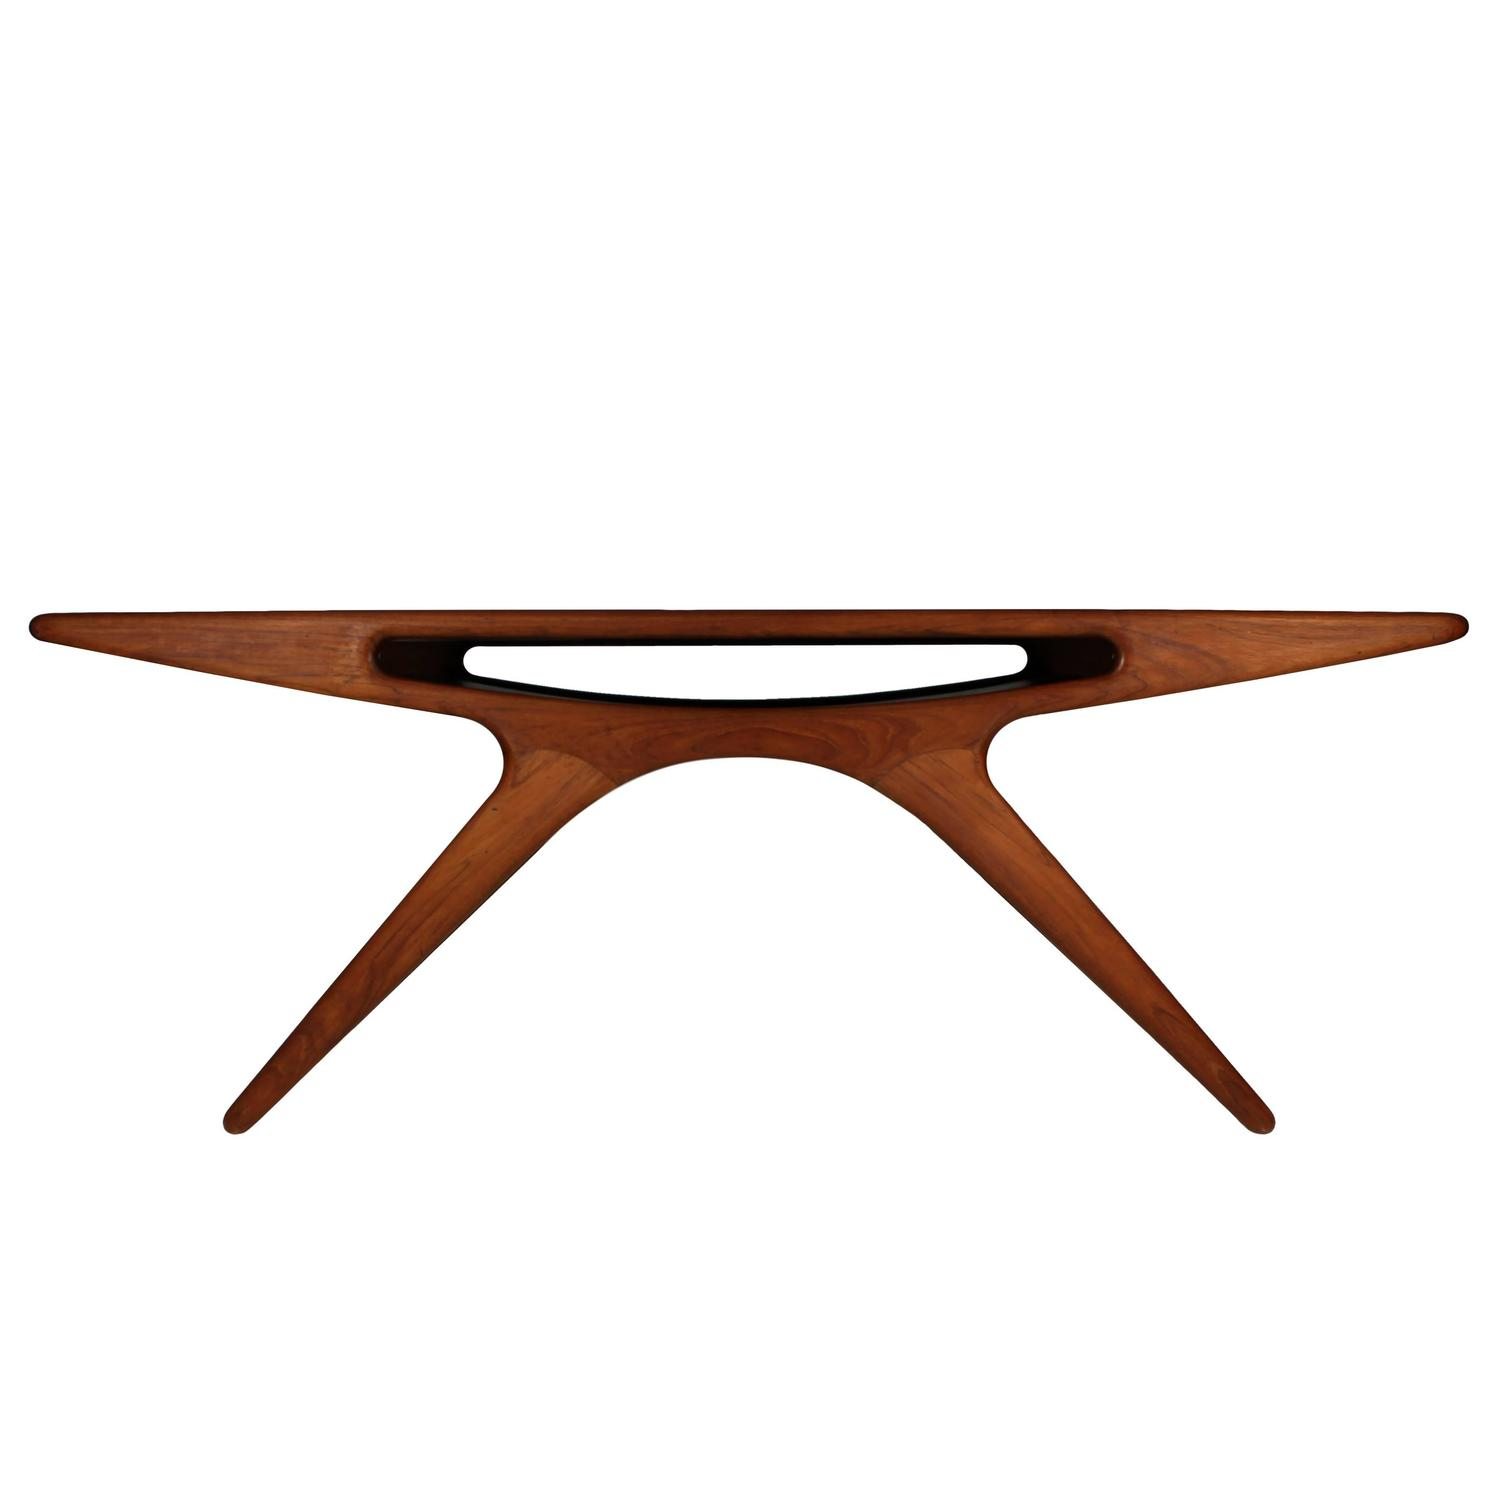 Johannes Andersen Teak Smile Coffee Table Denmark 1957 at 1stdibs